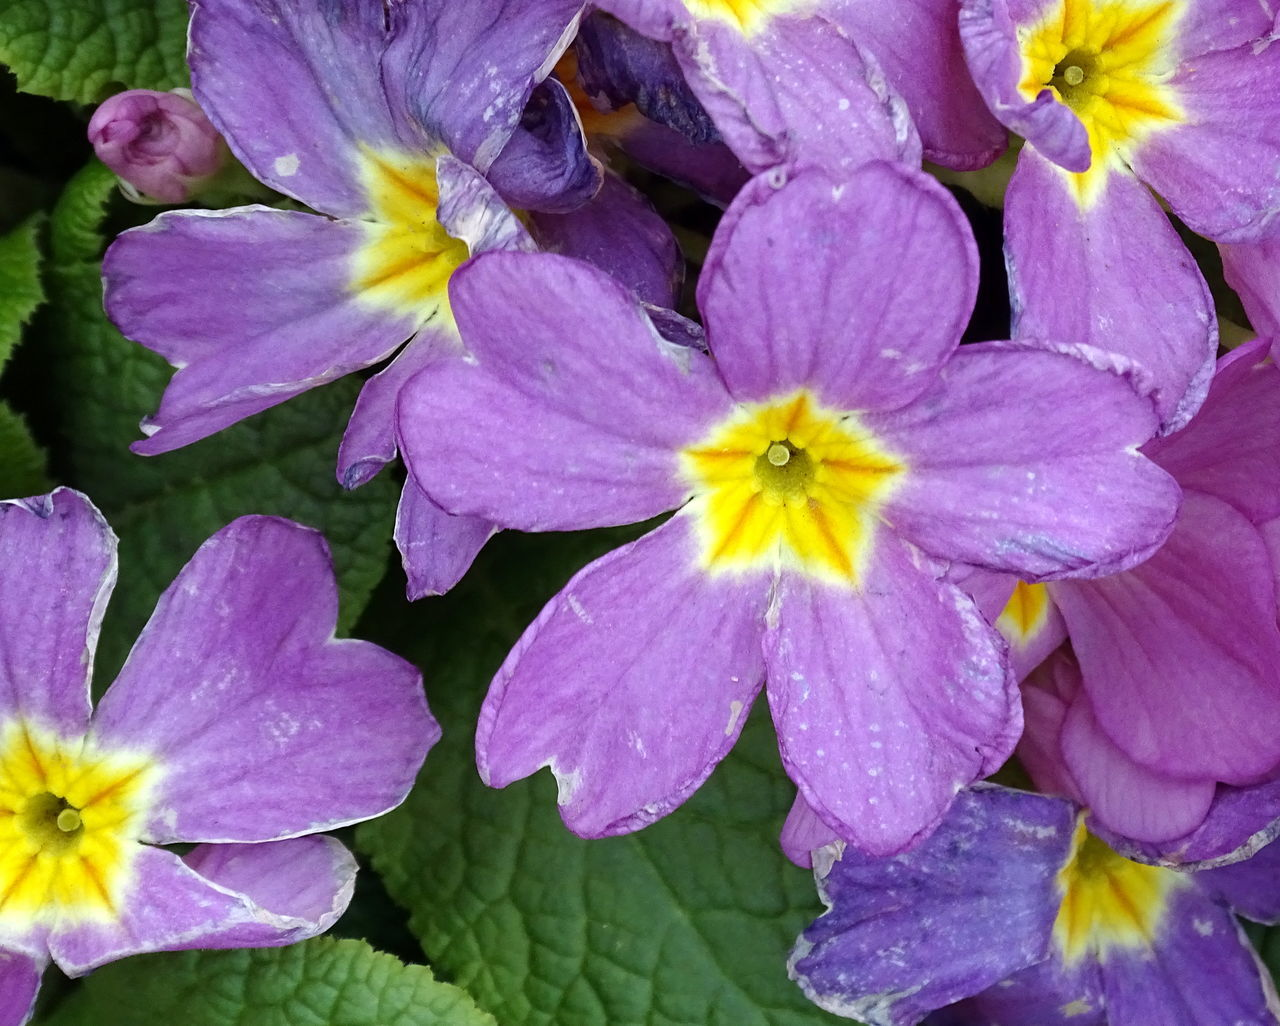 Beauty In Nature Blooming Close-up Day Flower Flower Head Fragility Freshness Growth Nature No People Outdoors Petal Primrose Purple